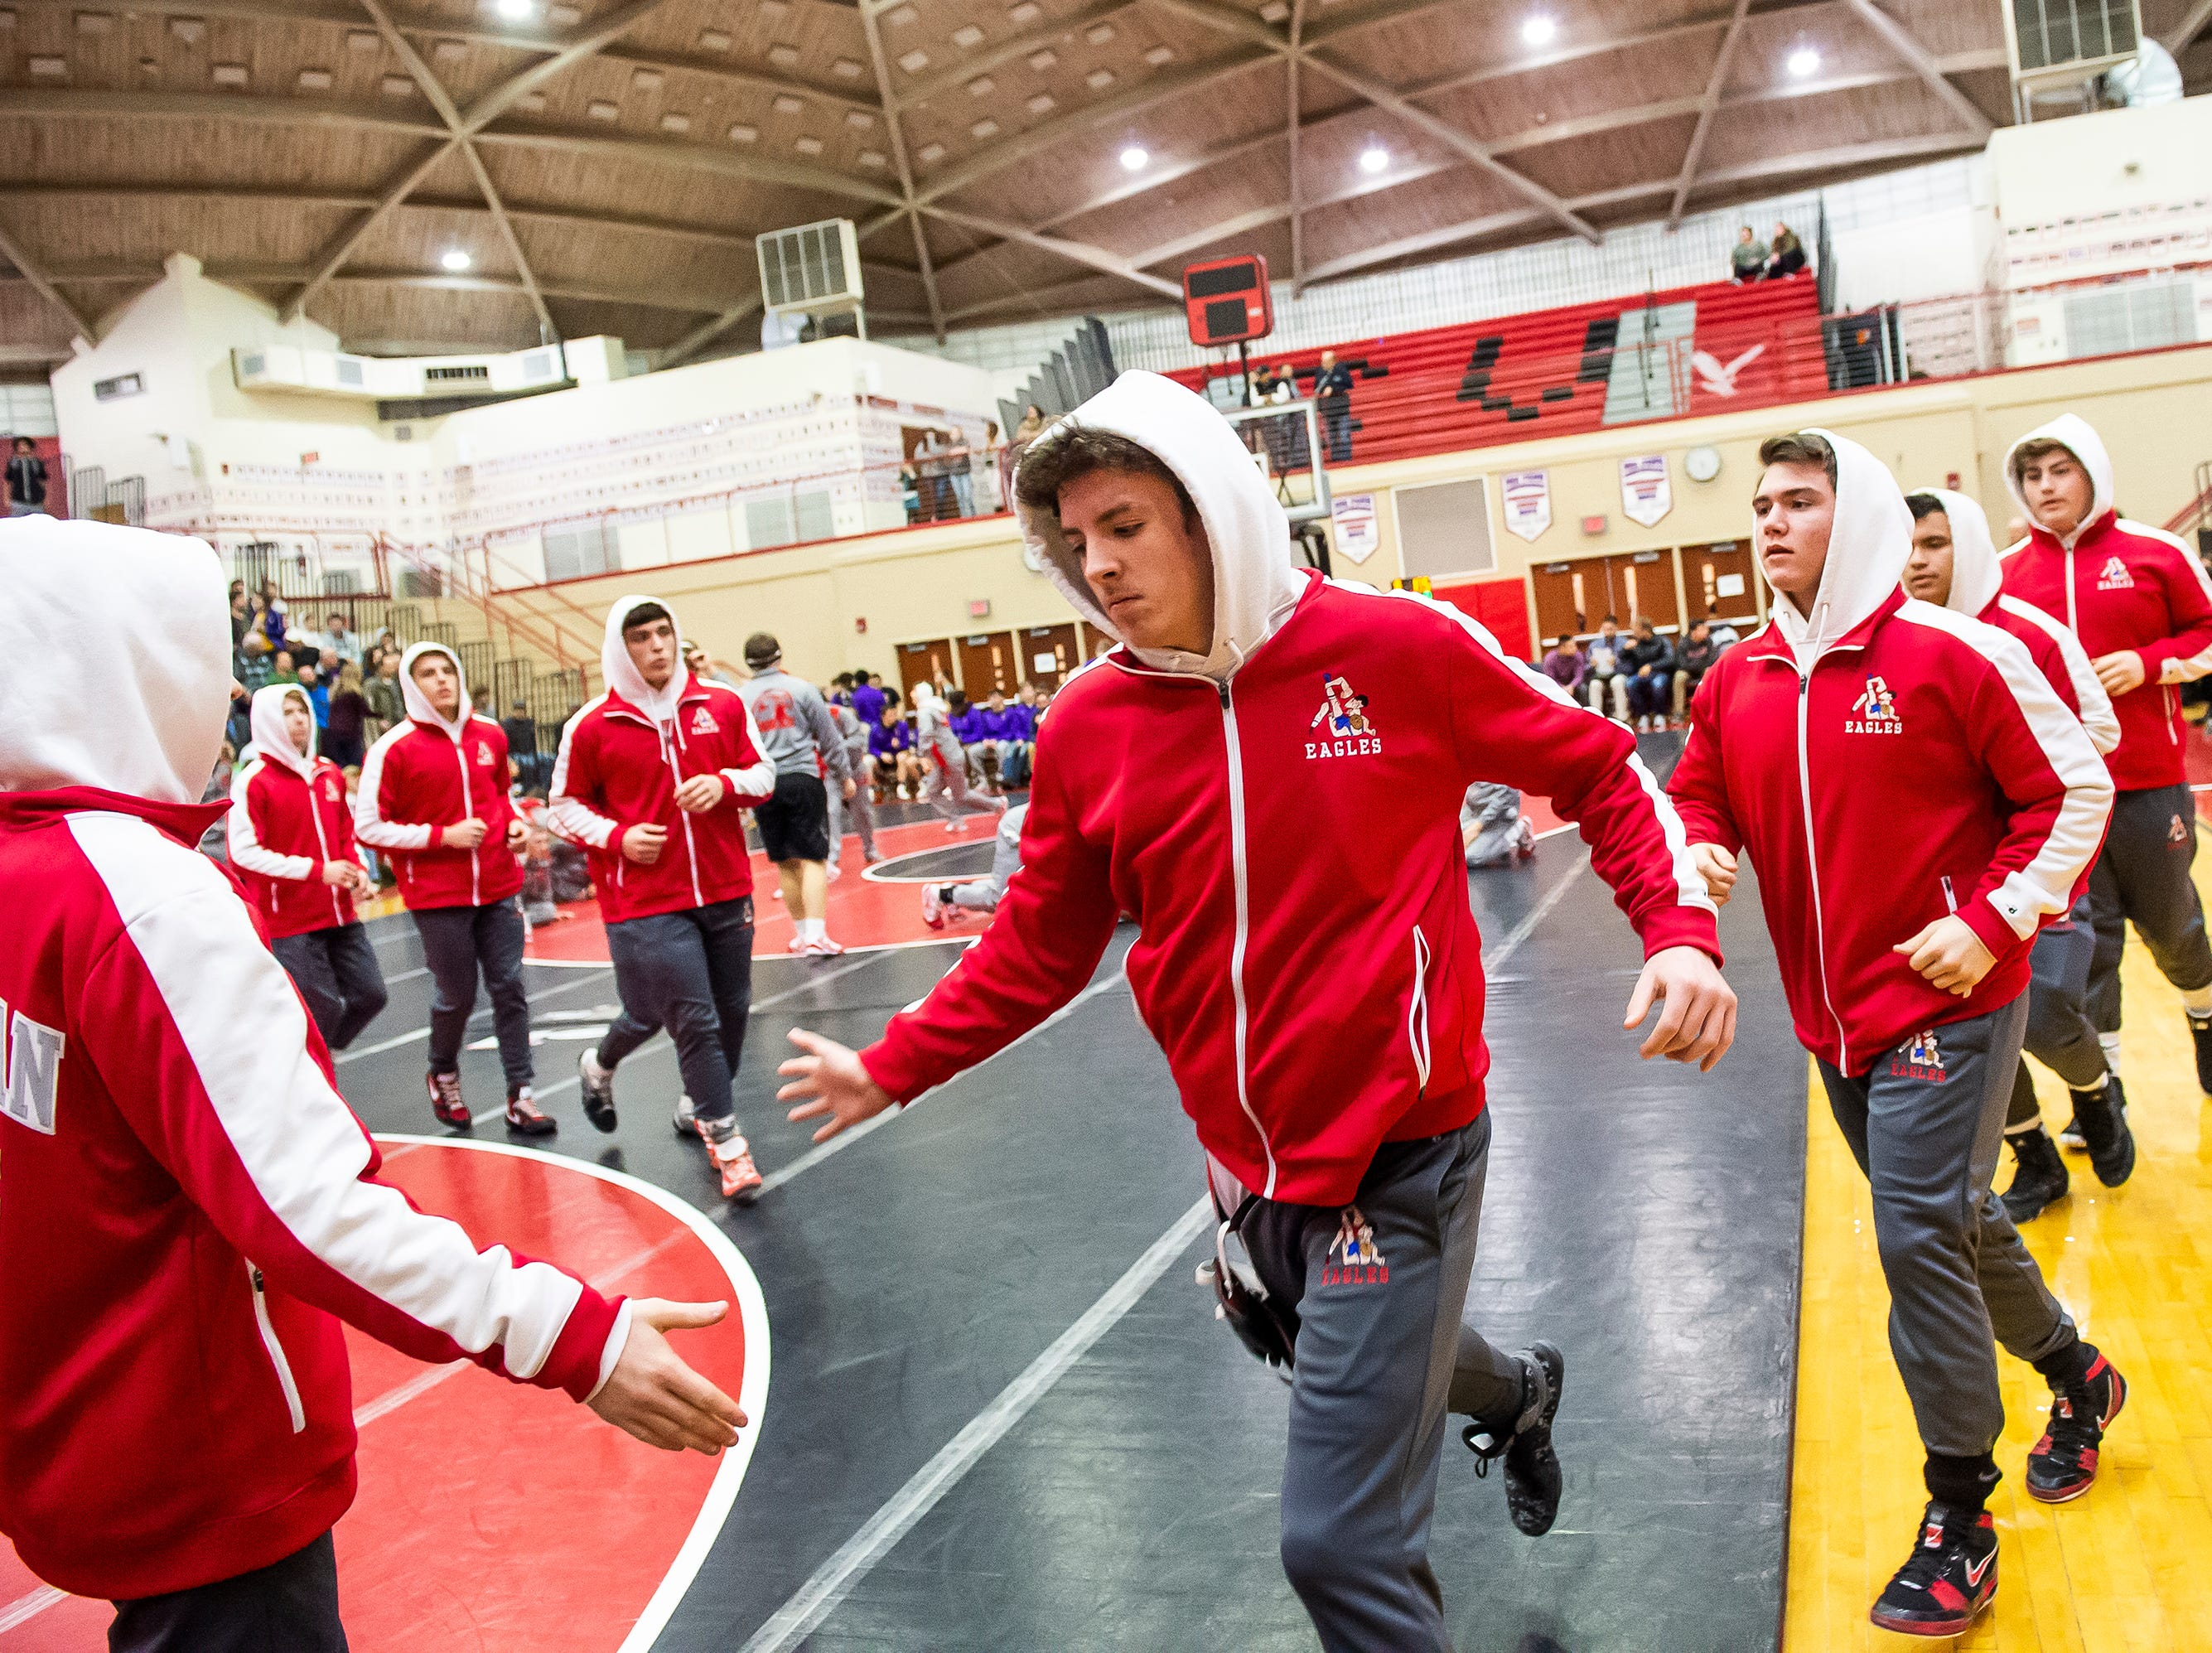 The Bermudian Springs wrestling team warms up prior to a PIAA District III 2A quarterfinal match at Cumberland Valley High School January 31, 2019.